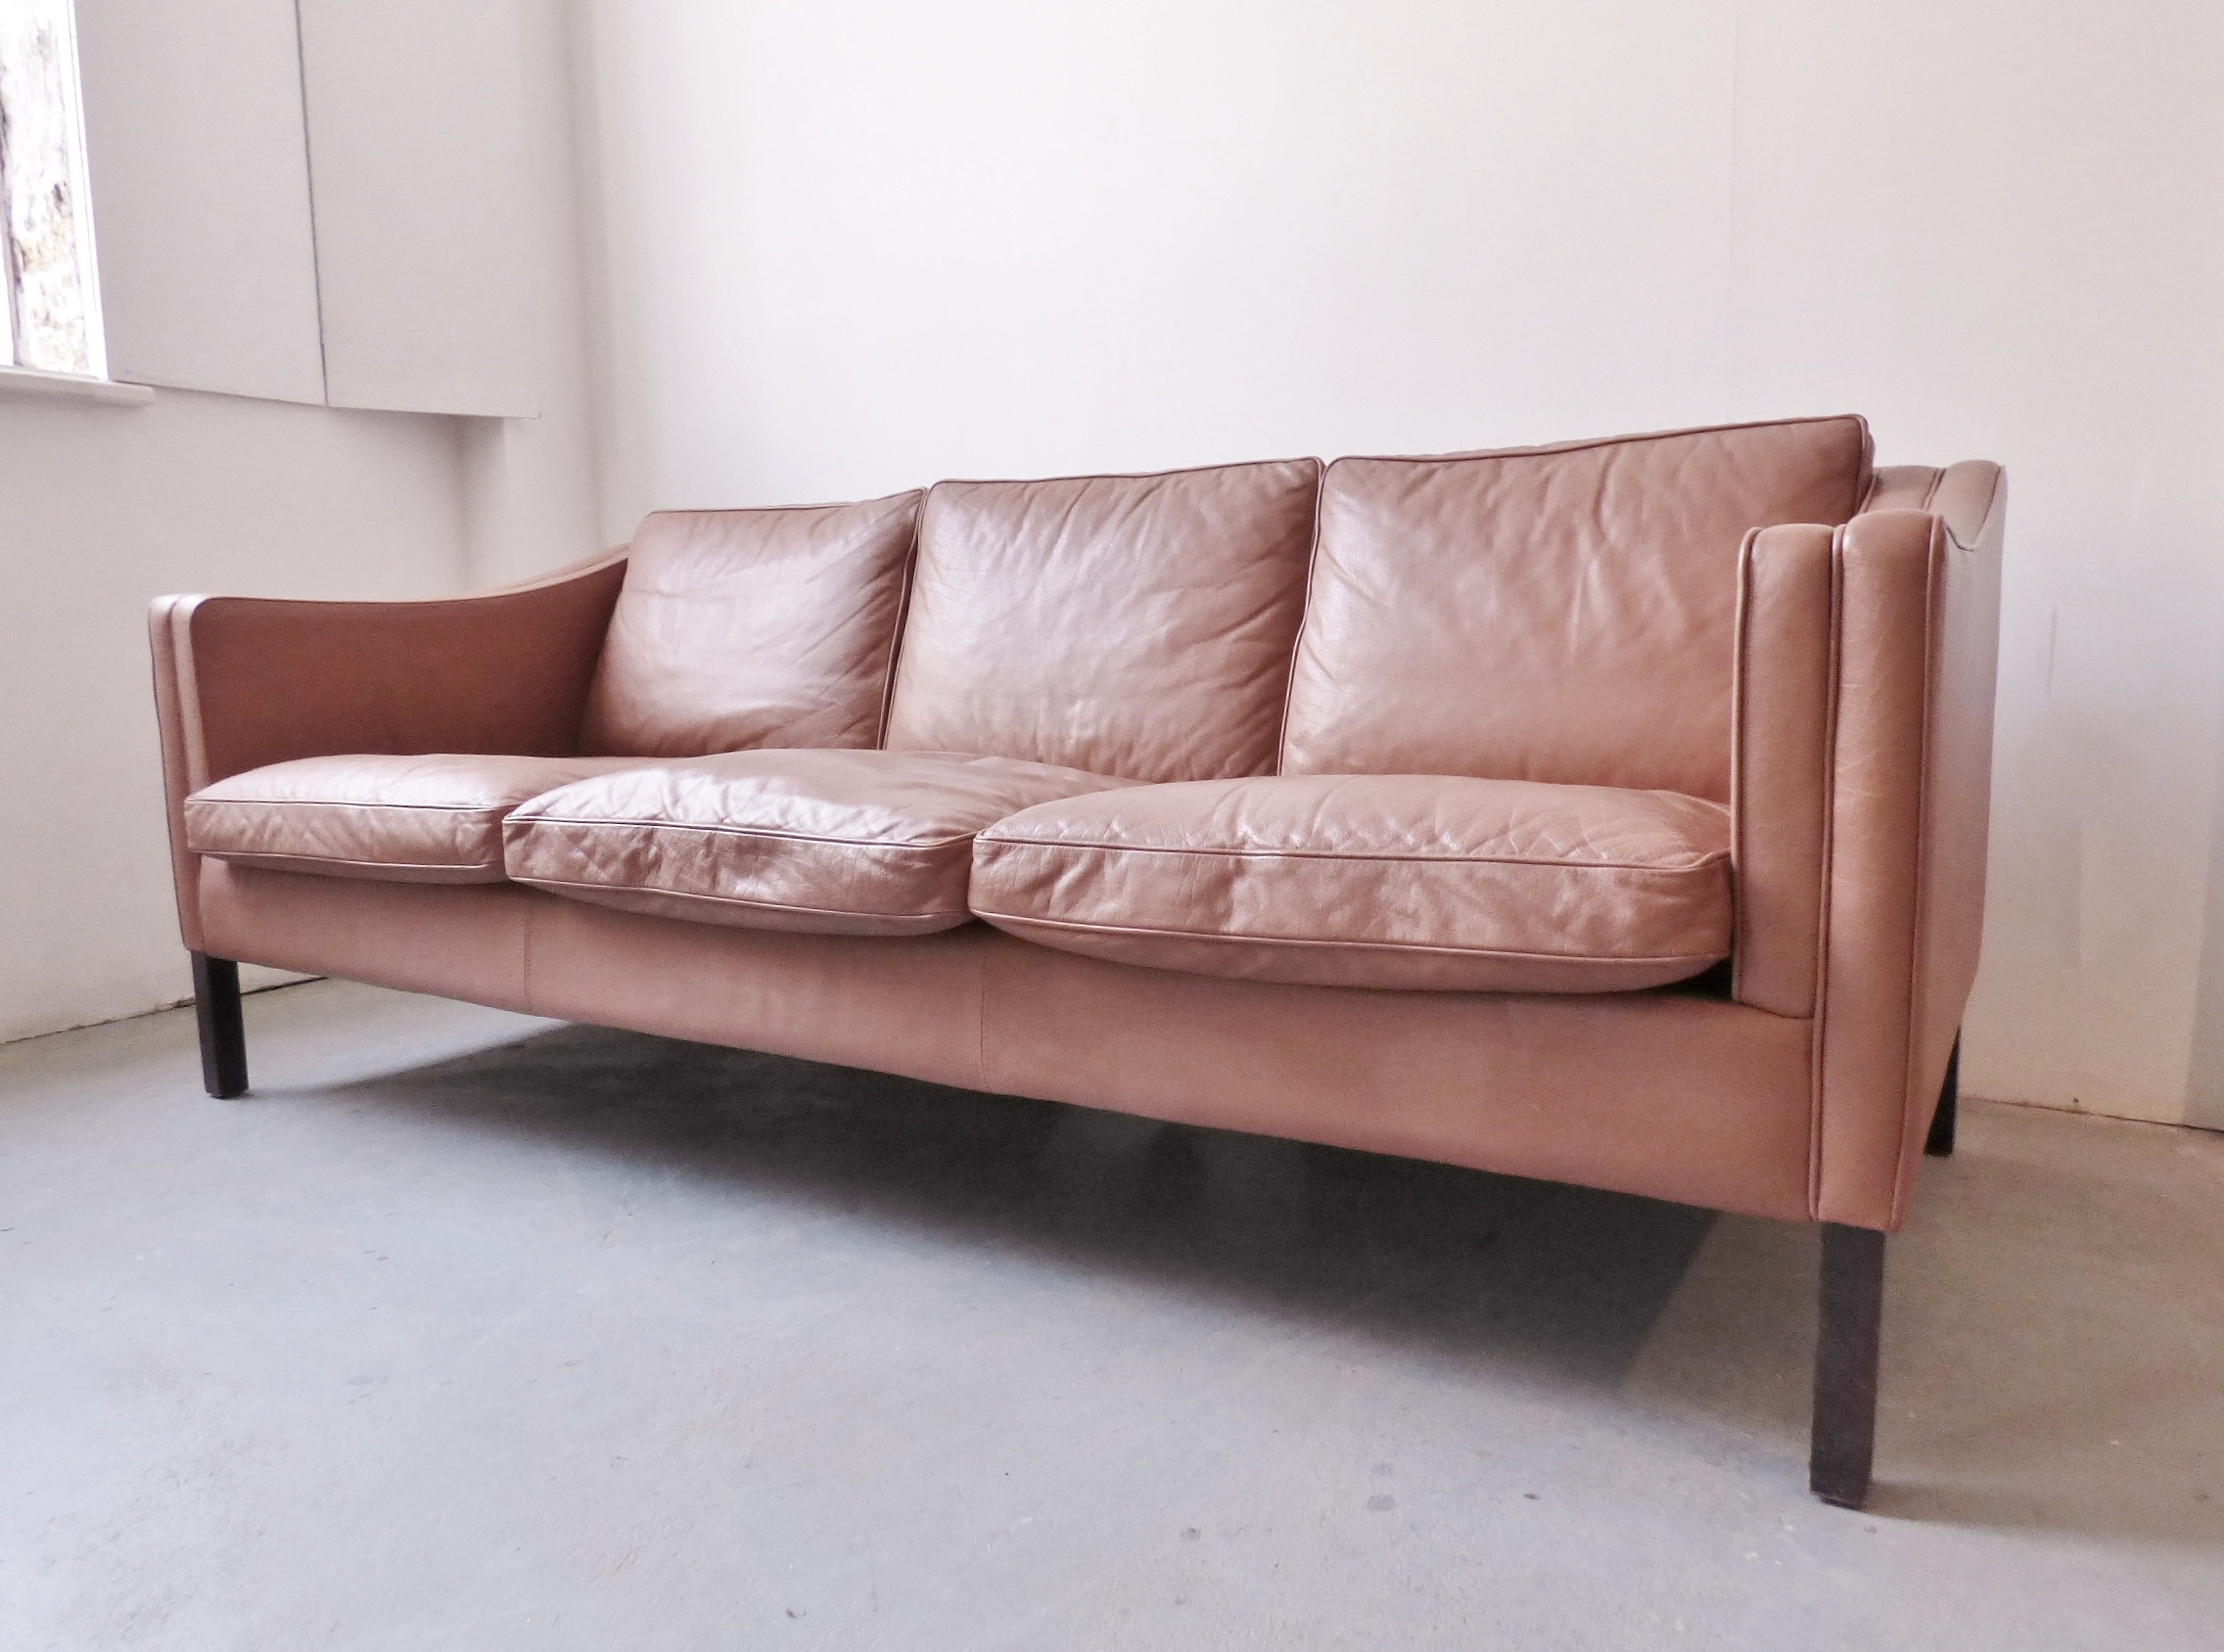 Light Tan Leather Couch Plain Light Blue Living Room Leather